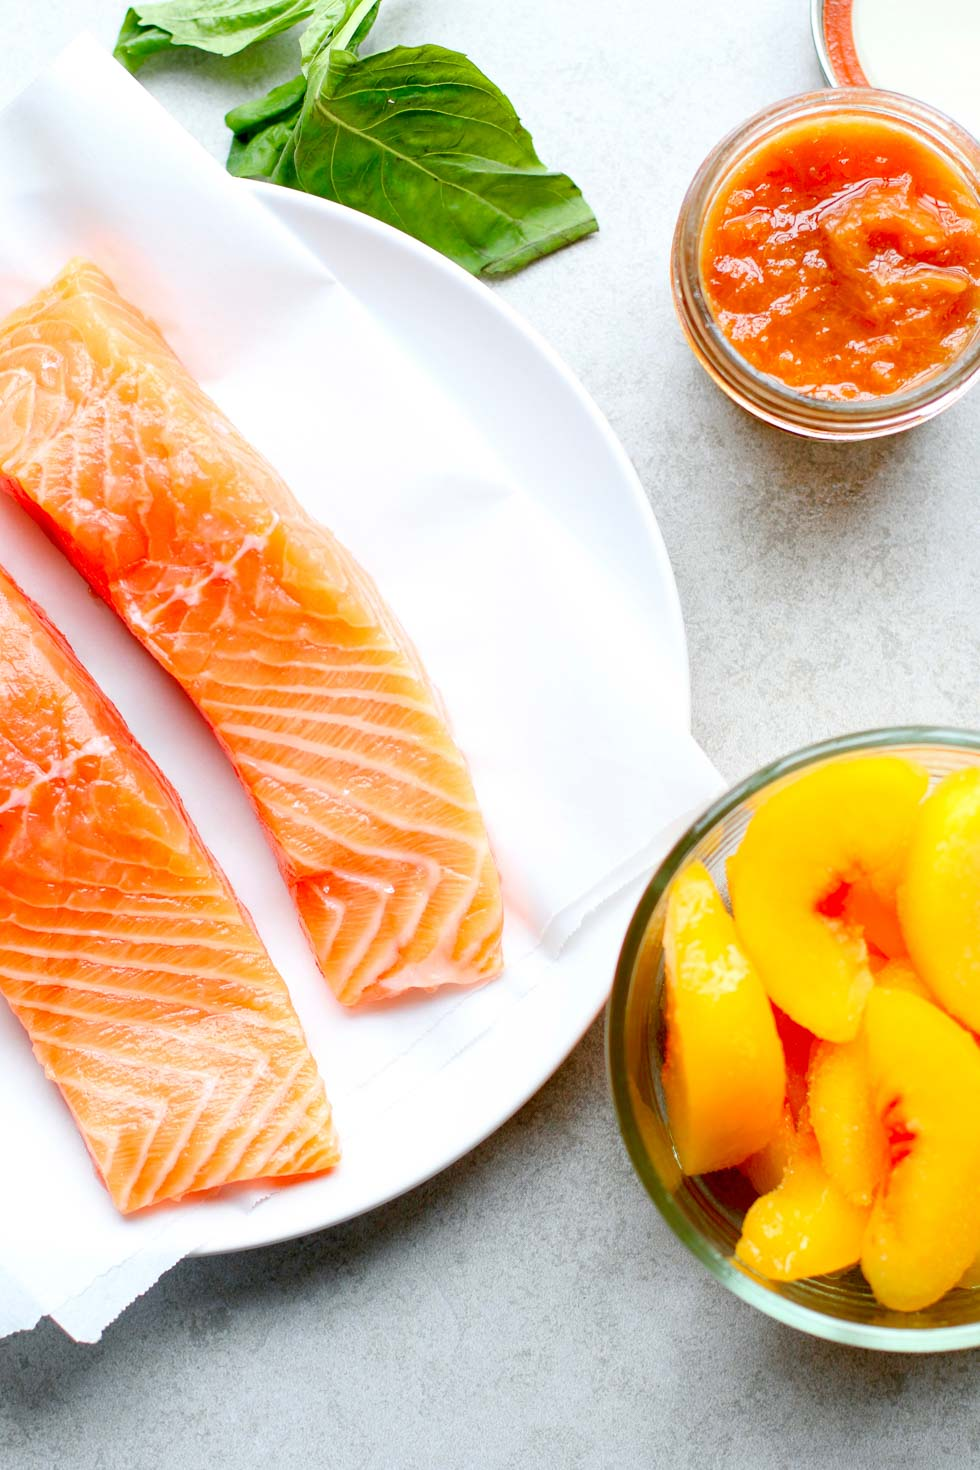 How to Make Peach Glazed Salmon - Ingredients